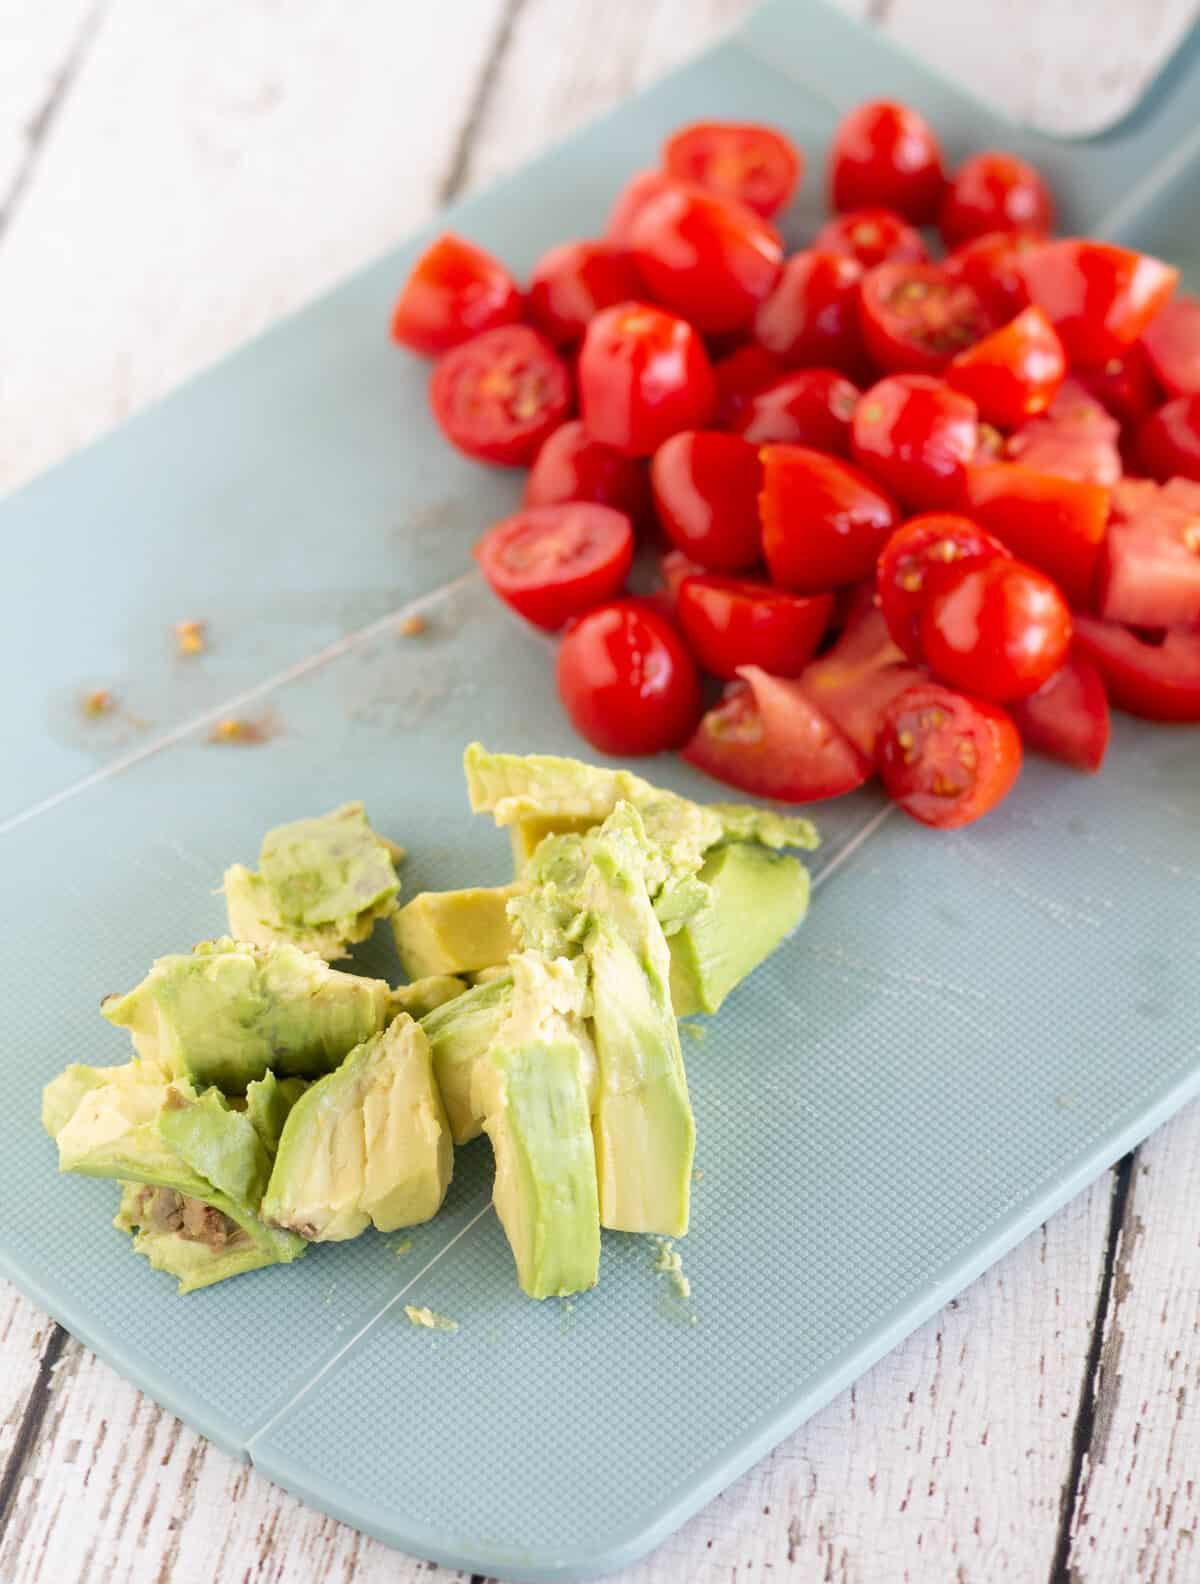 chopped tomatoes and avocado on cutting board